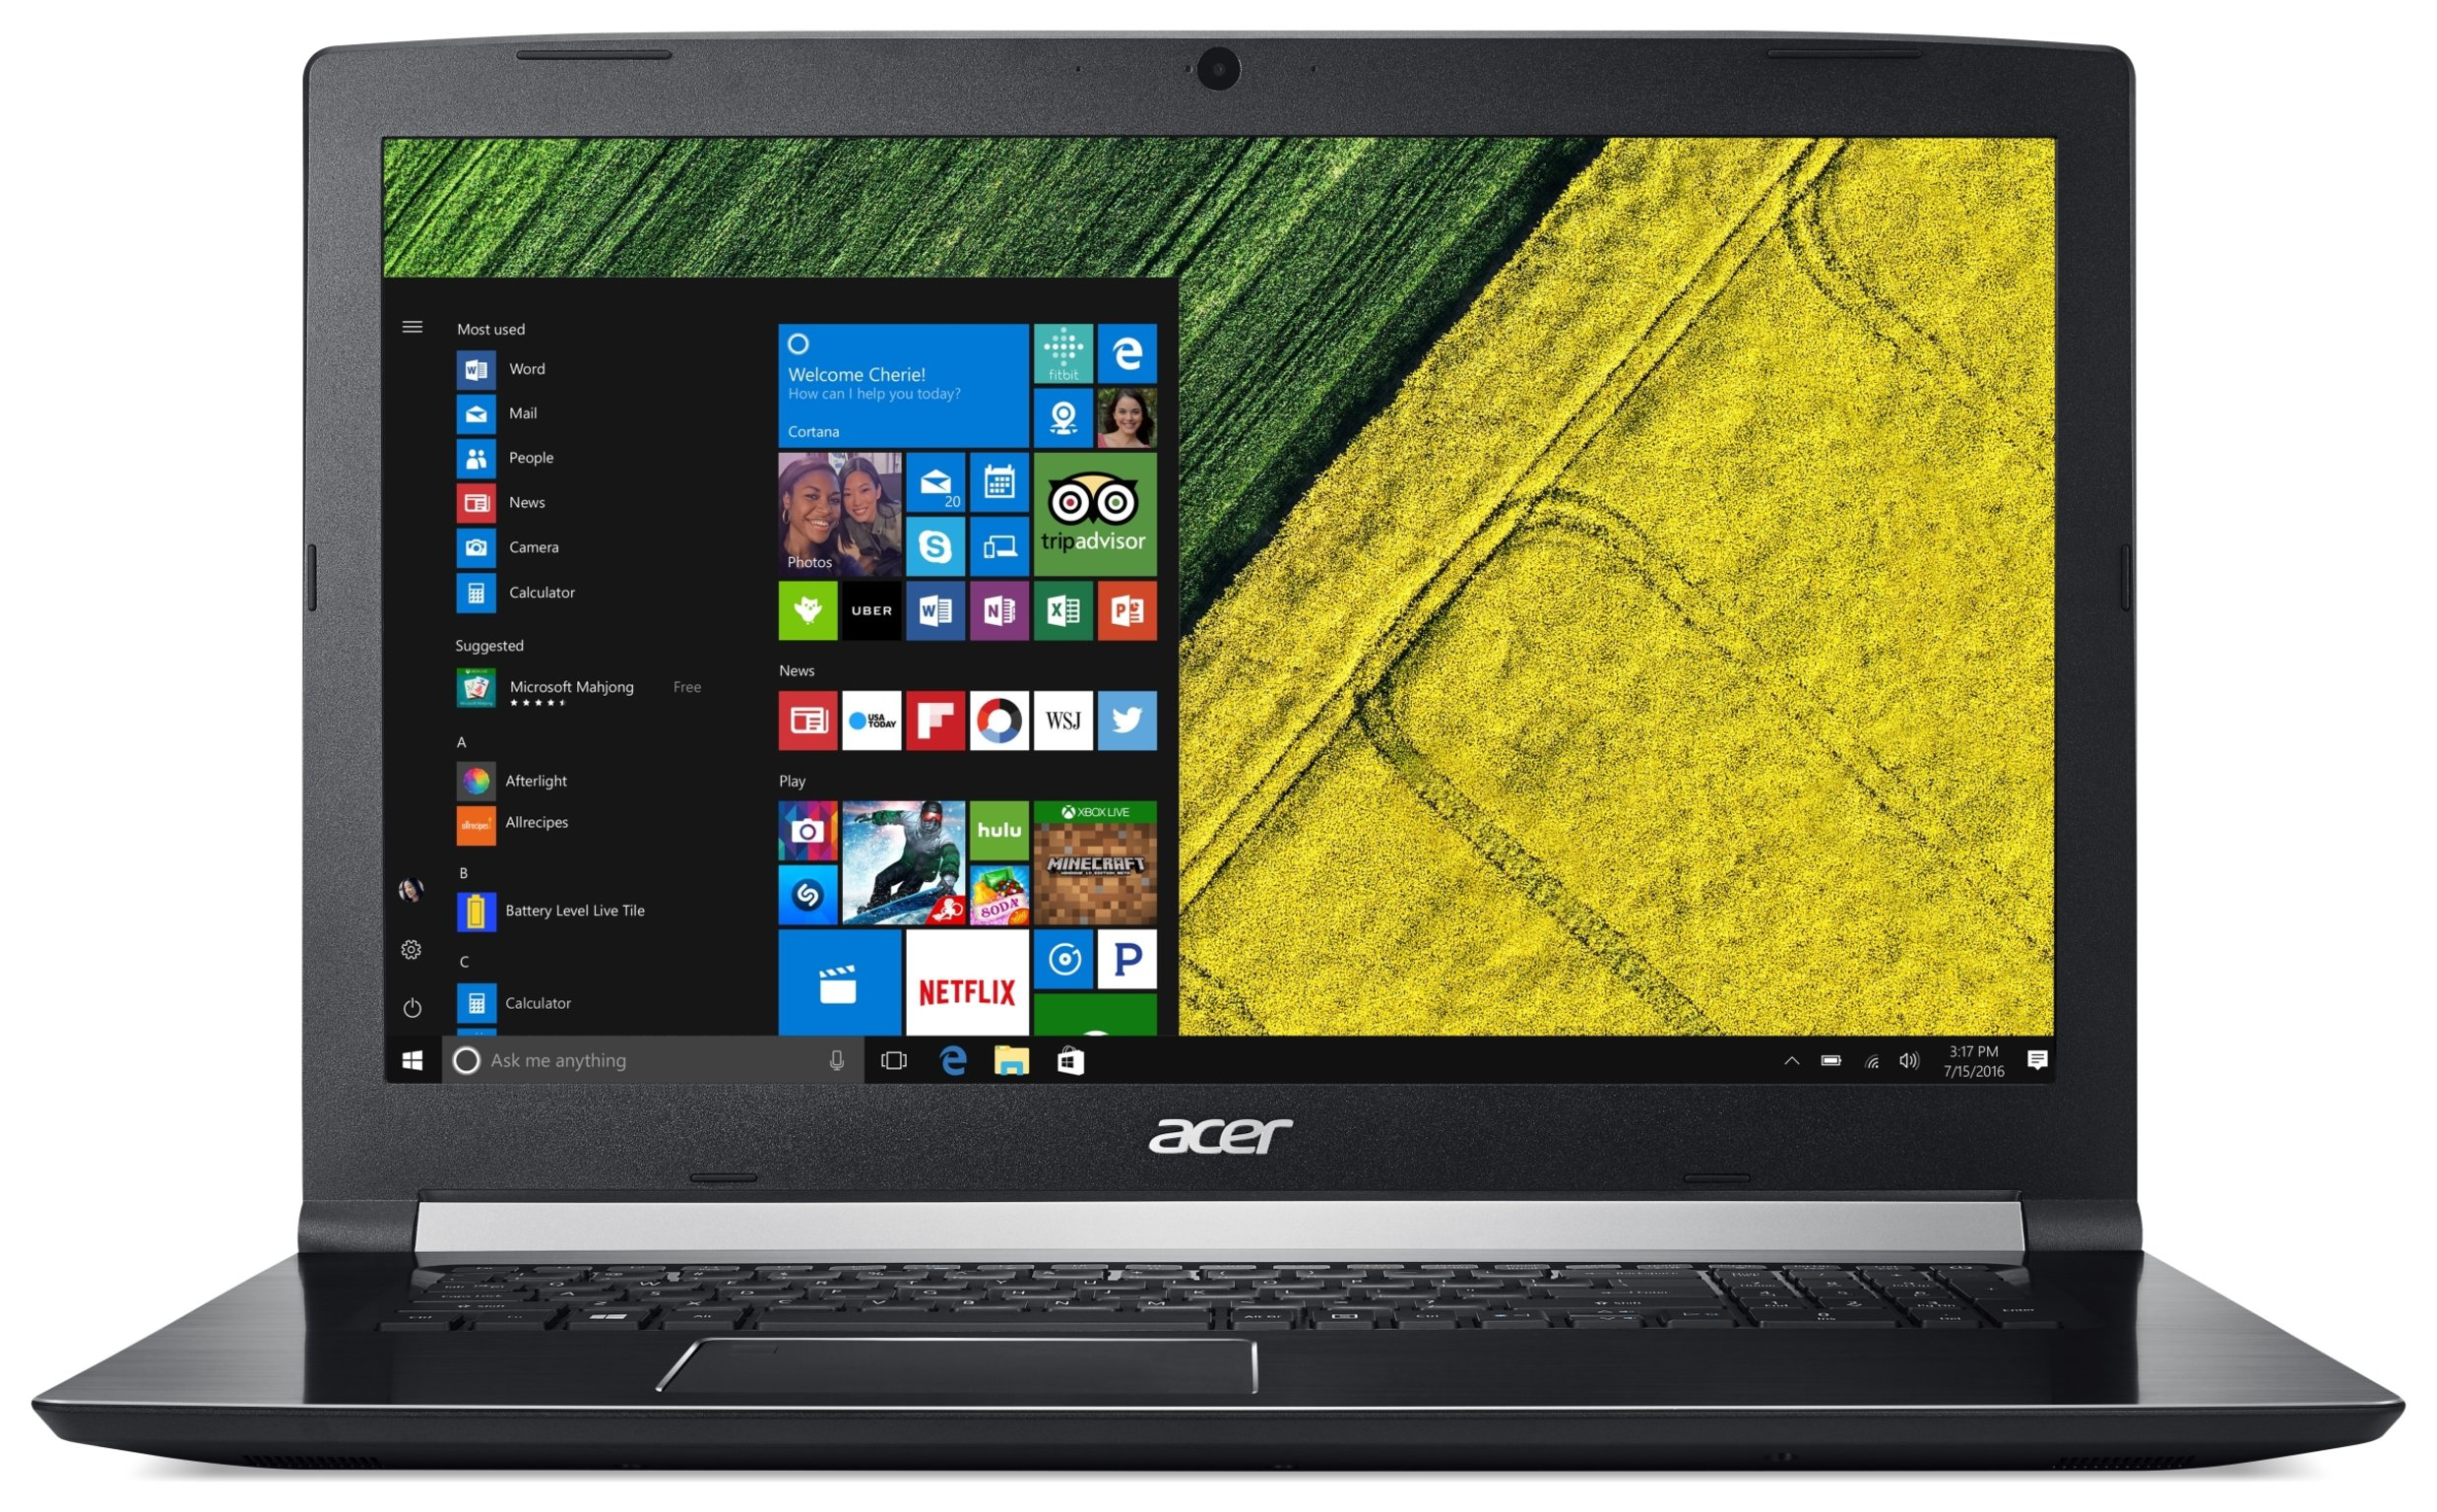 Image of Acer Aspire 7 15.6 Inch i5 8GB 1TB 128GB Laptop - Black